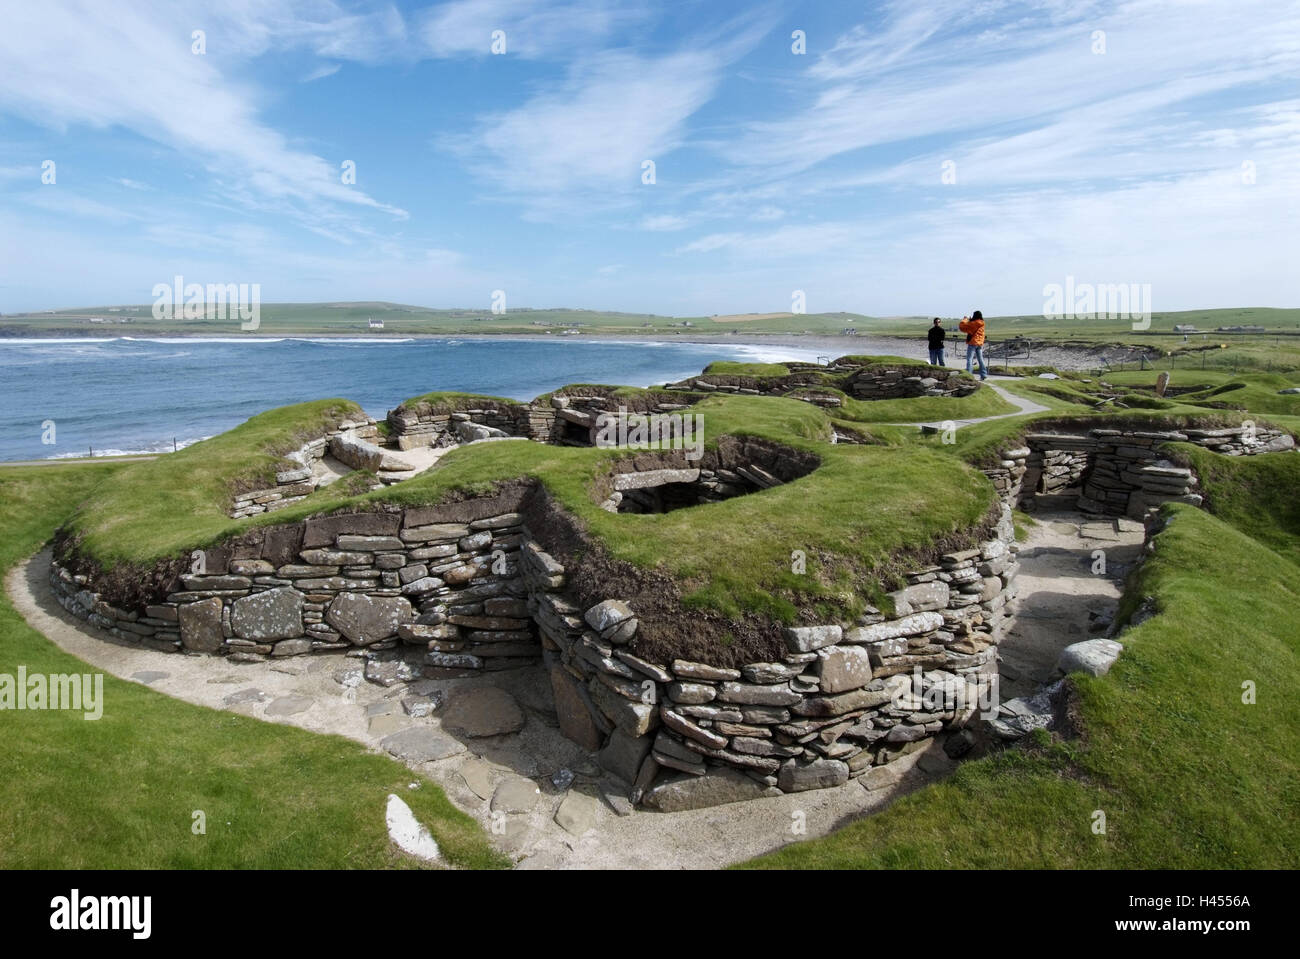 Great Britain, Scotland, Orkneyinseln, island Main country, Skara Brae, settlement, Stone Age, tourists, Orkney, - Stock Image